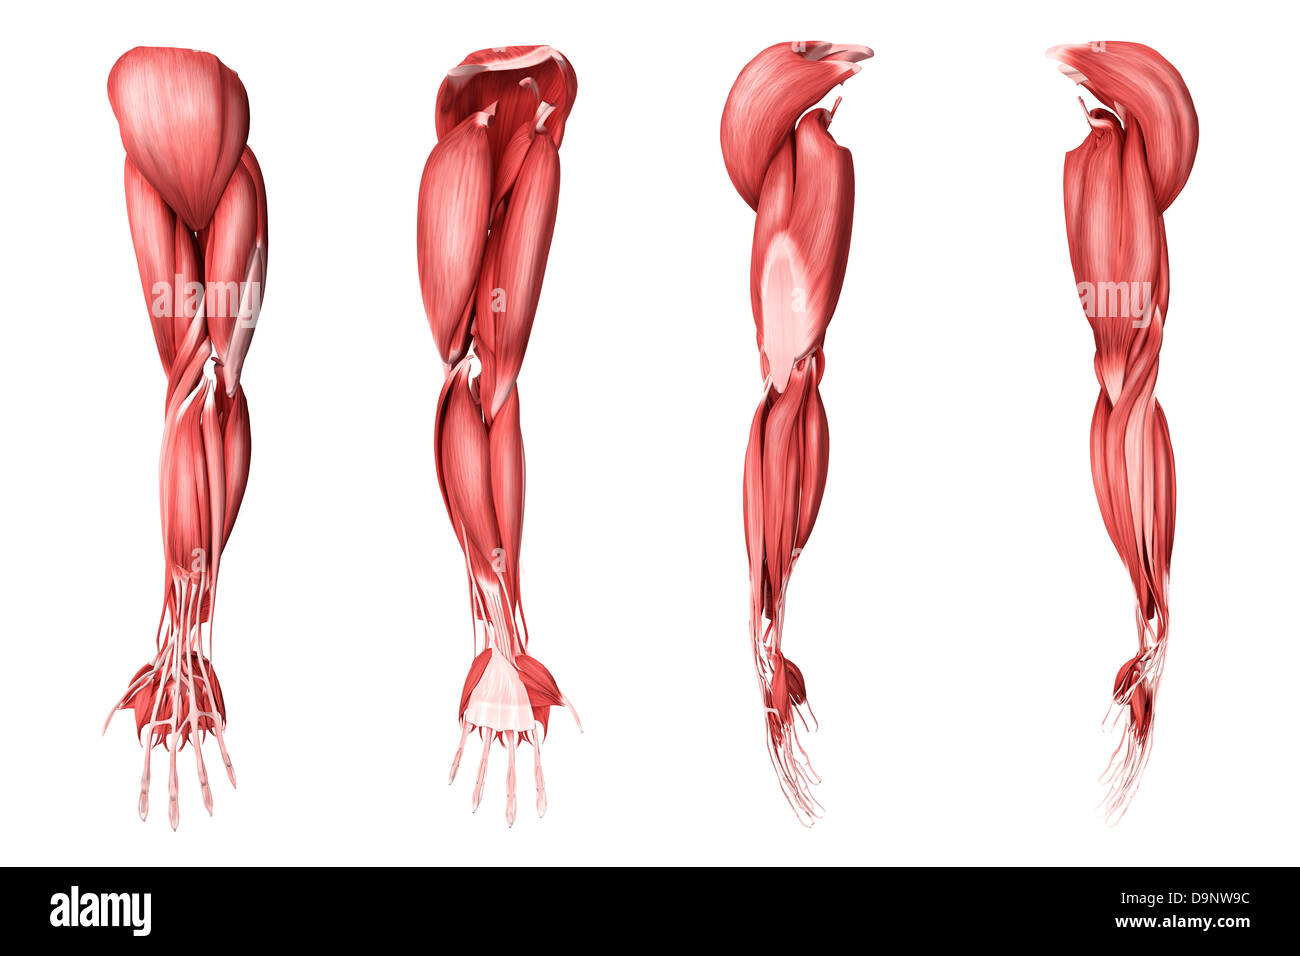 Medical Illustration Of Human Arm Muscles Four Side Views Stock